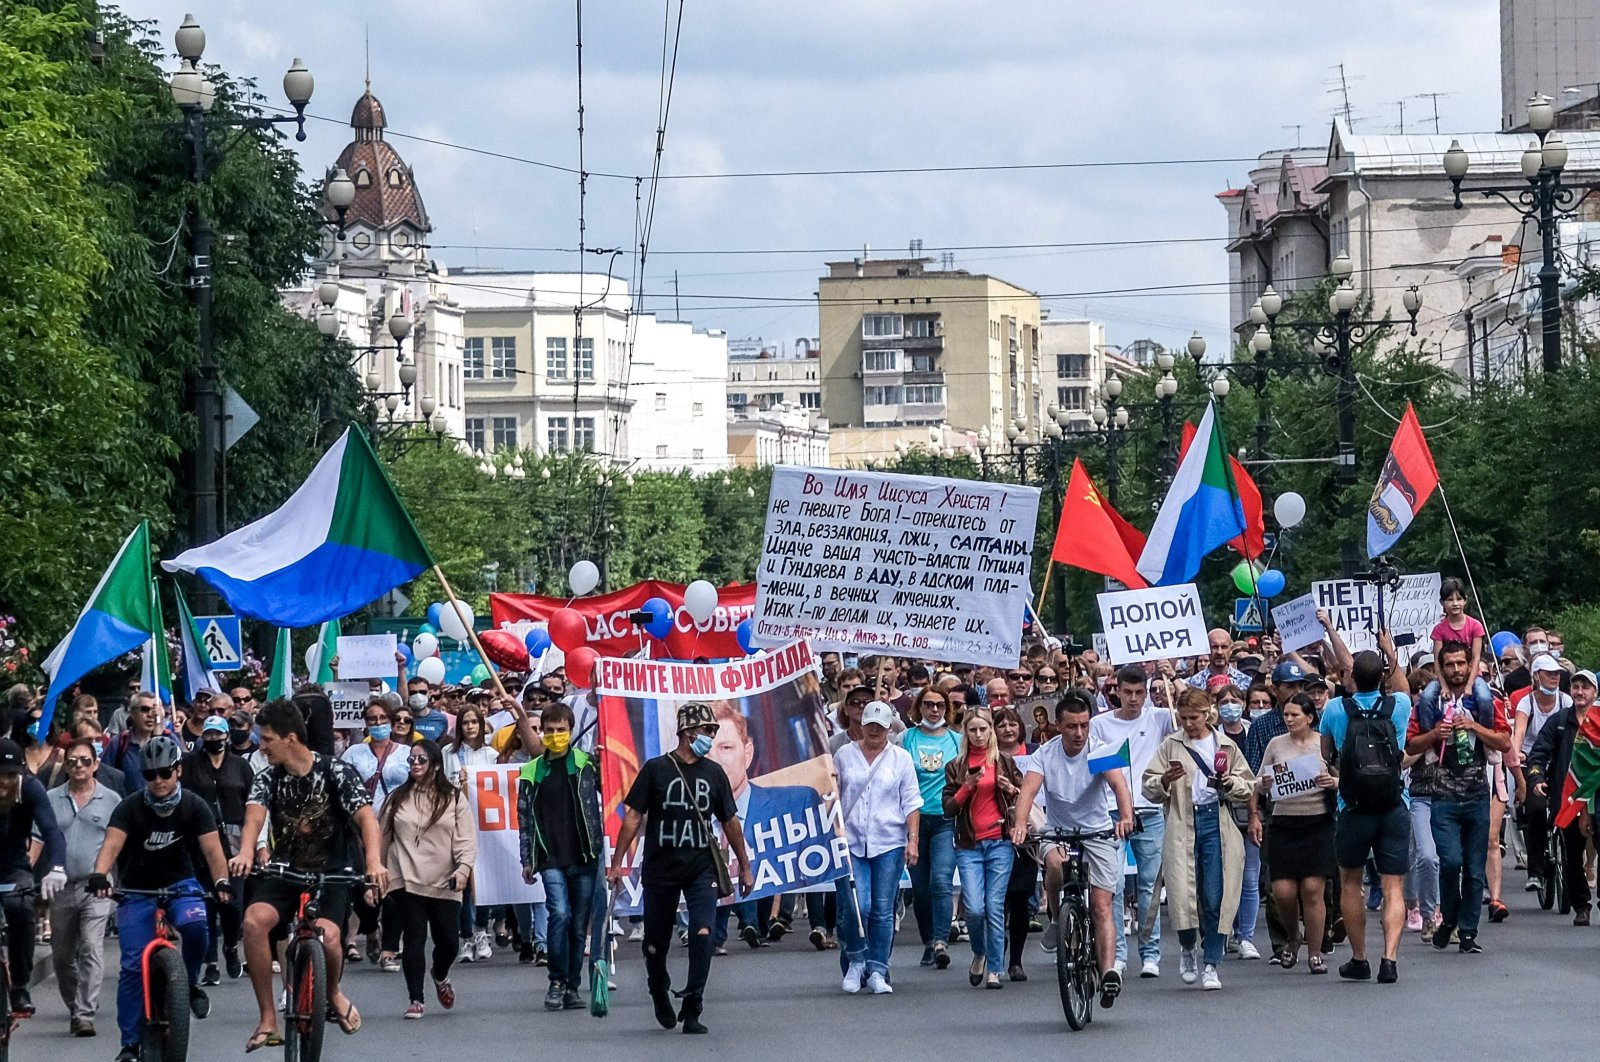 """People carry a banner reading """"Return Furgal for us,"""" during an unauthorized rally in support of Sergei Furgal in the Russian far eastern city of Khabarovsk on Aug. 8, 2020. (AFP Photo)"""